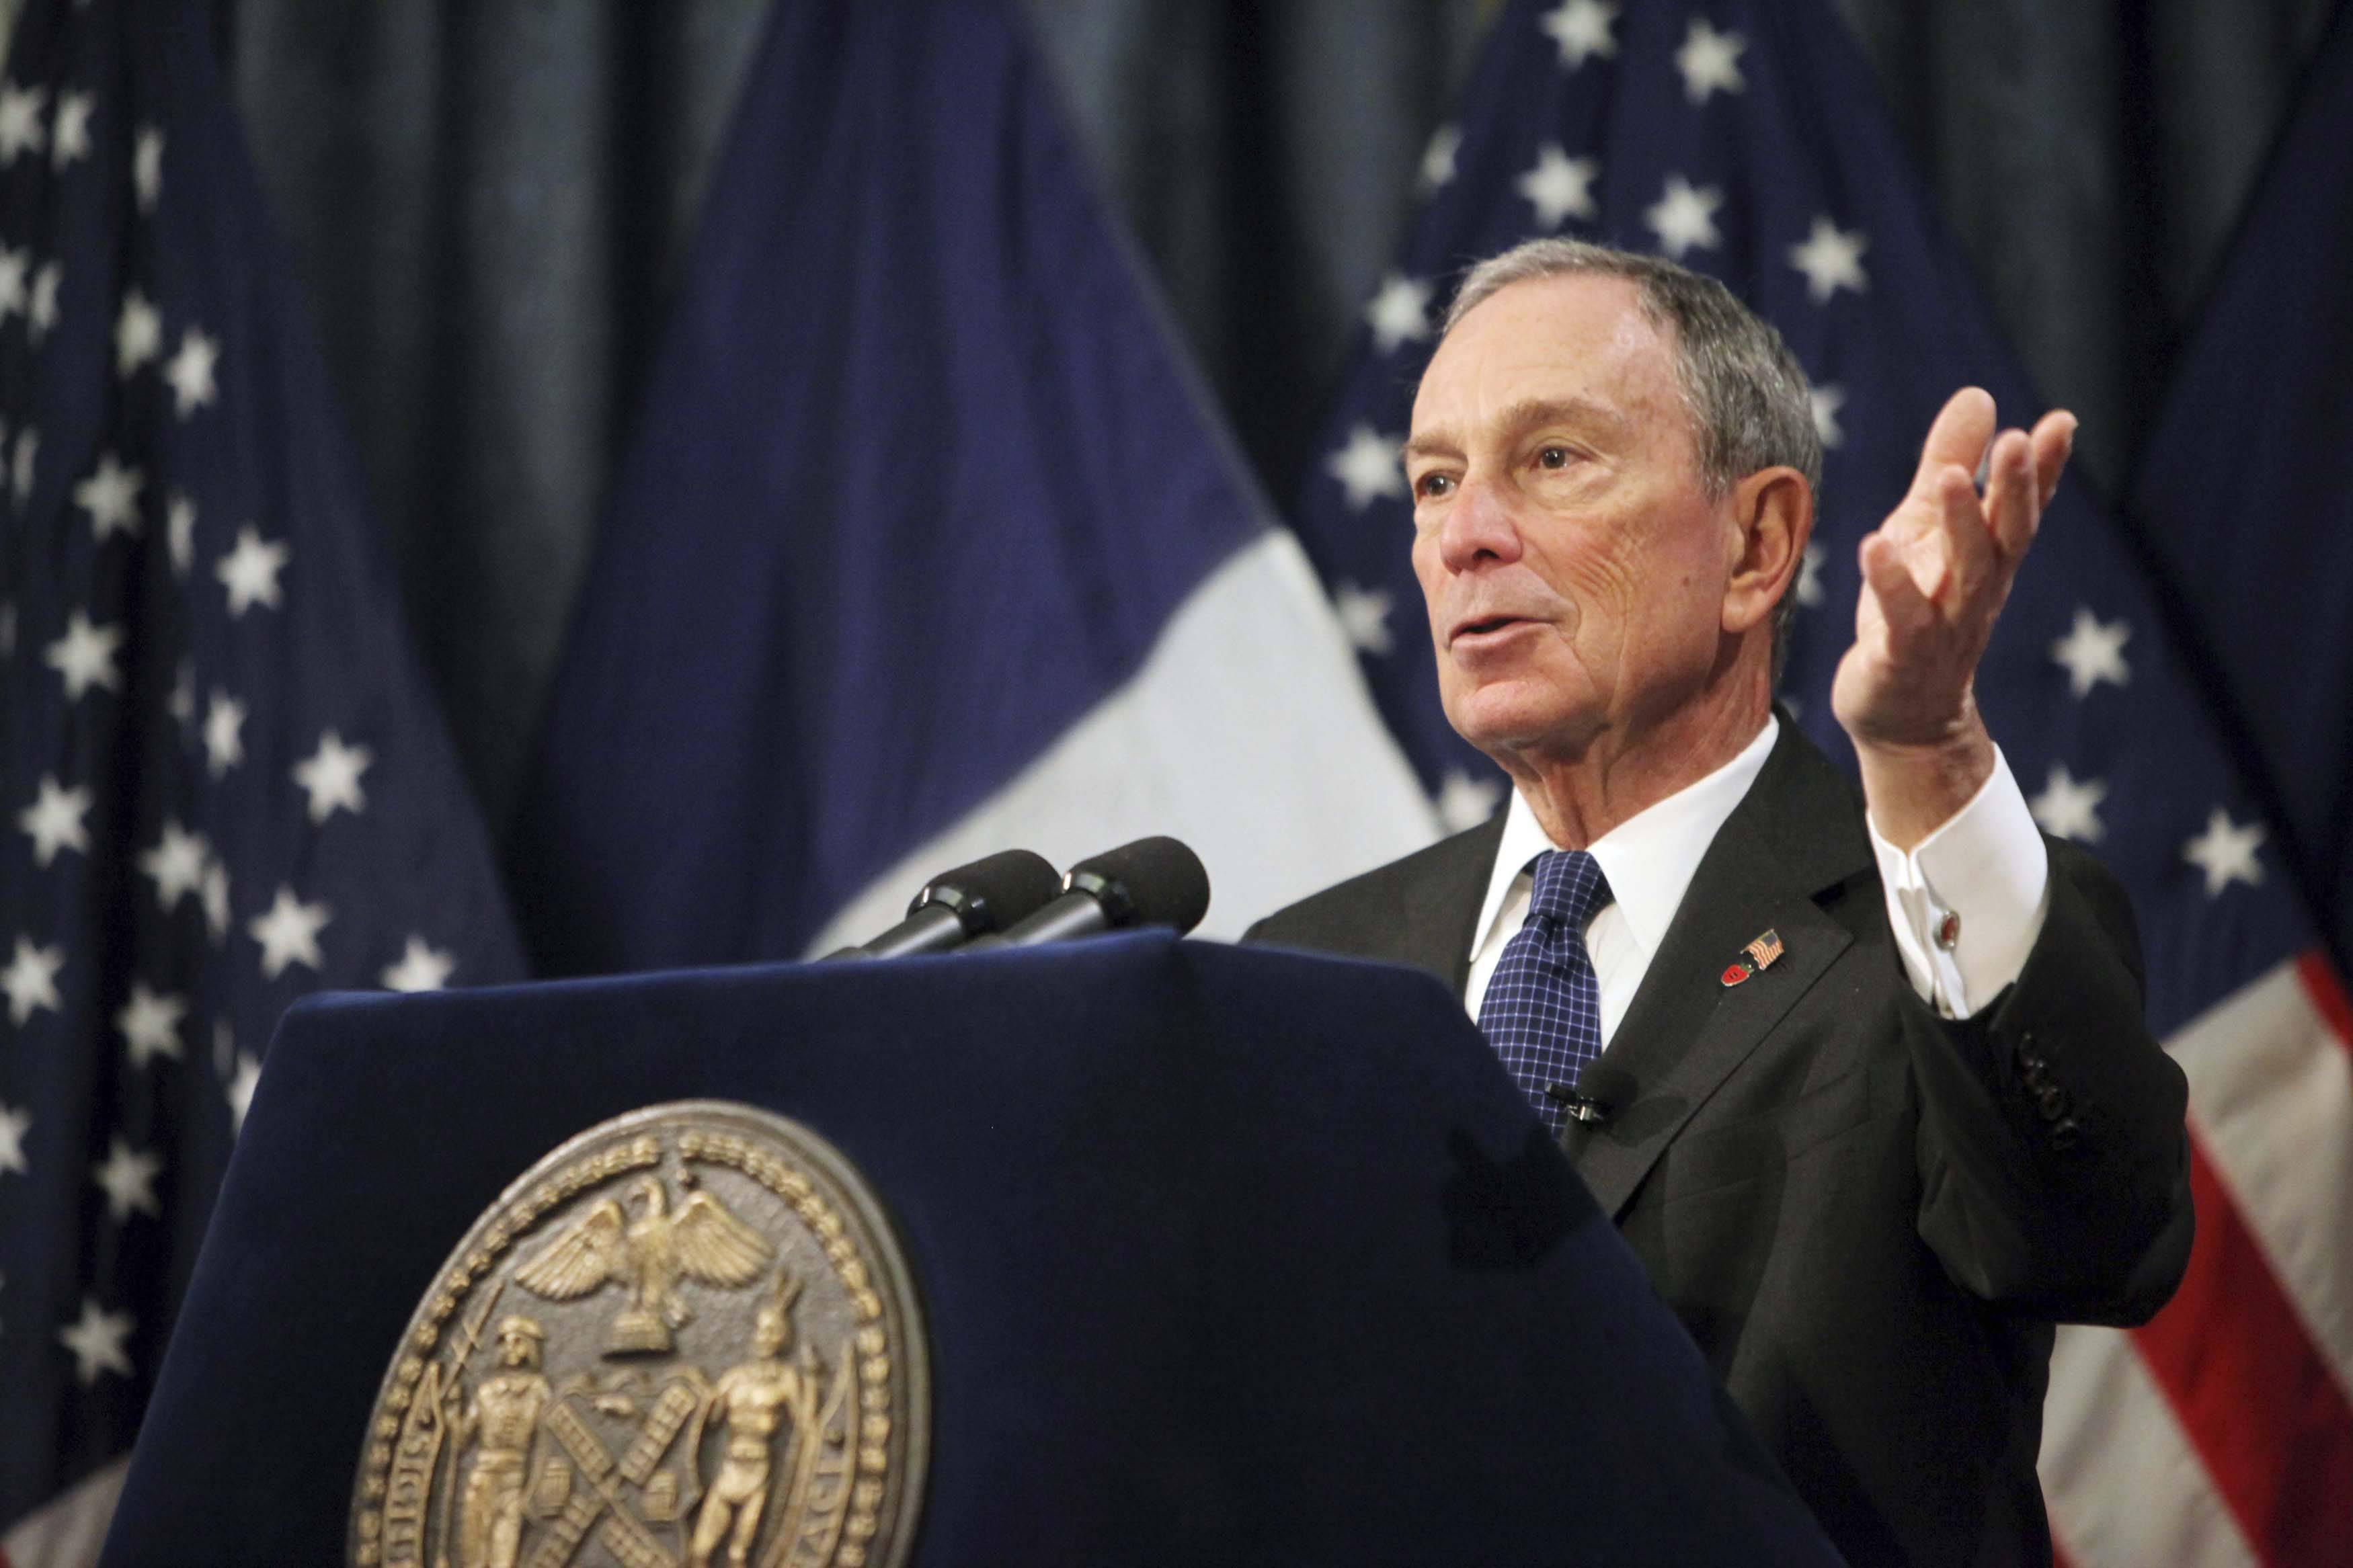 New York mayor Michael Bloomberg unveils budget in New York